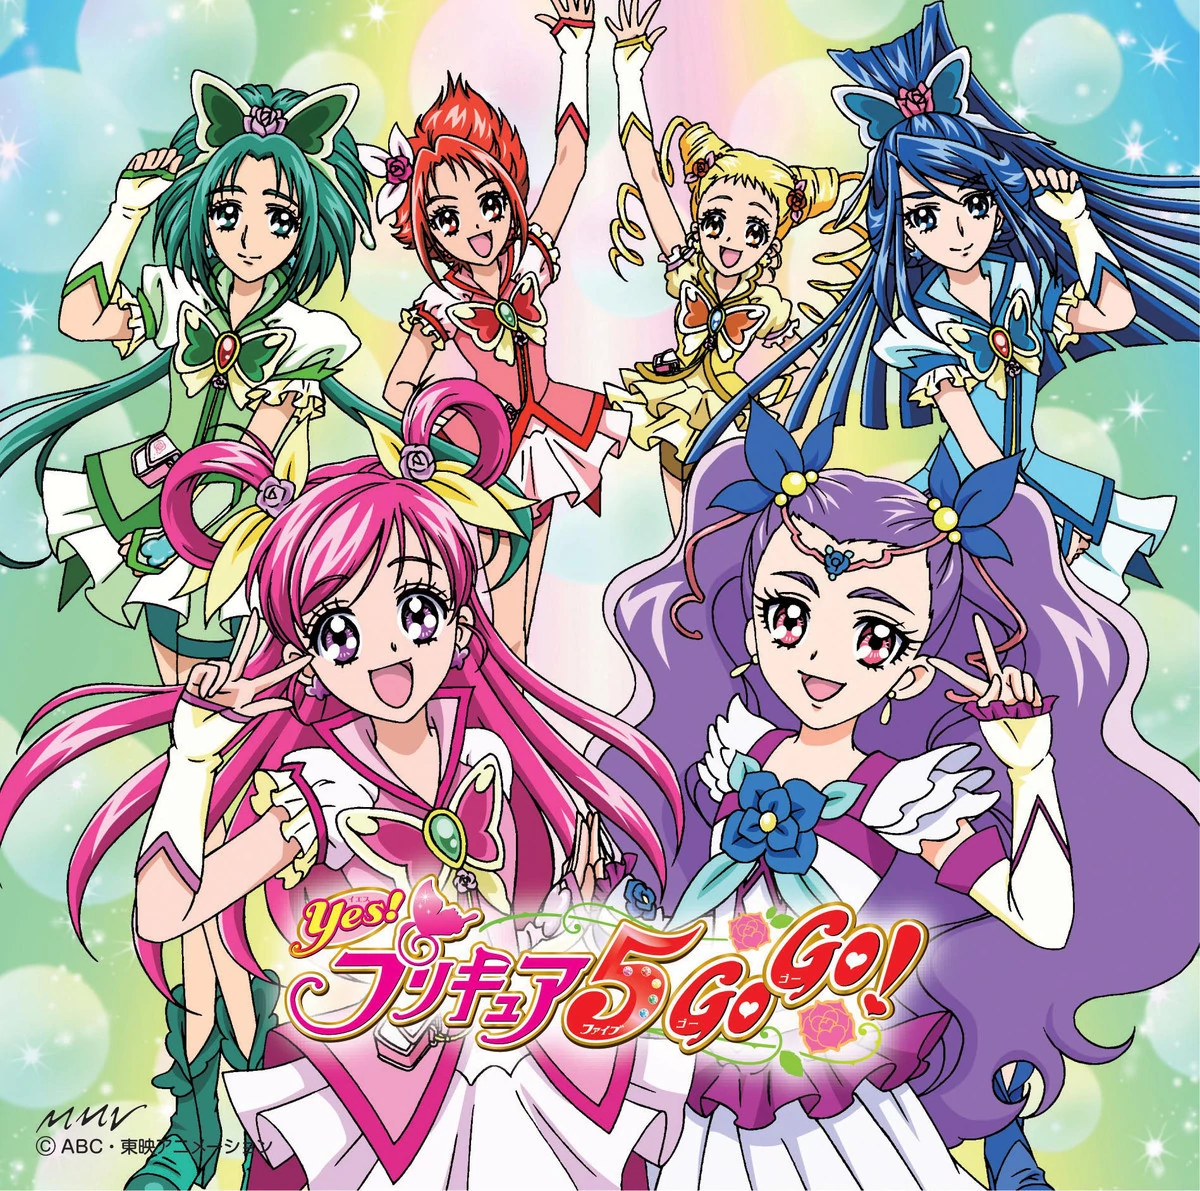 Ganbalance De Dance Relay Of Hope Switch On To Pretty Cure Mode Animation Ypc5gg Single